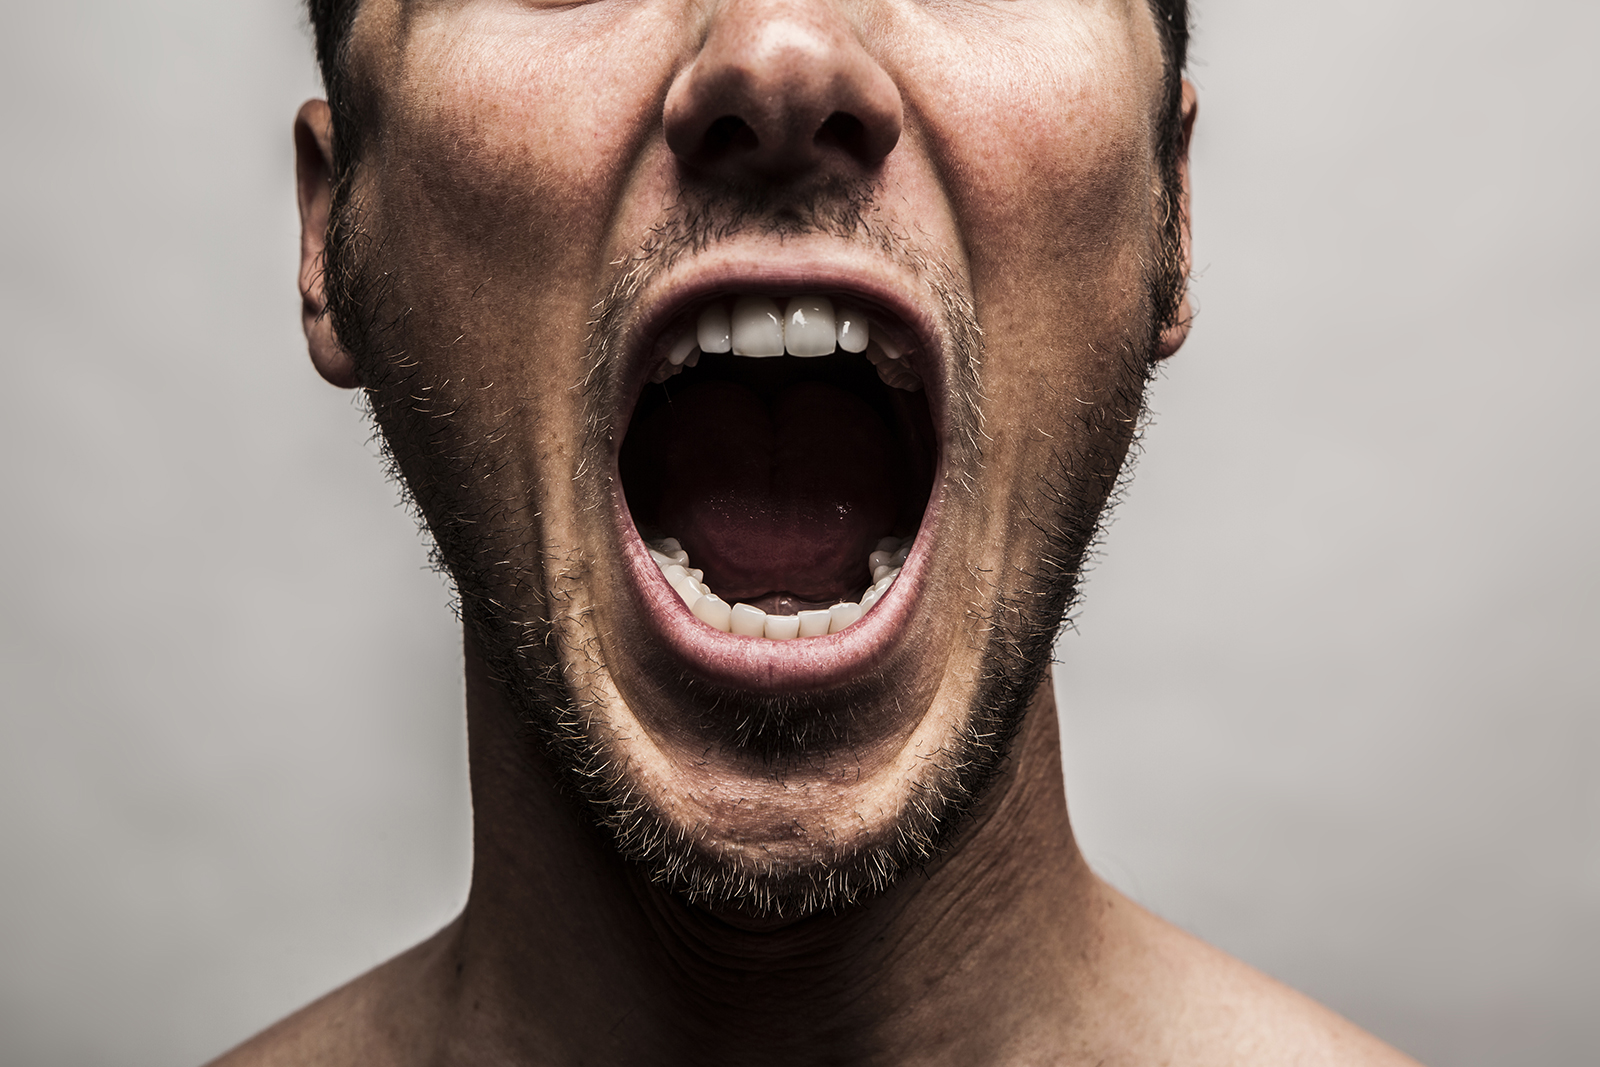 Which human screams affect us most? The answer might surprise you